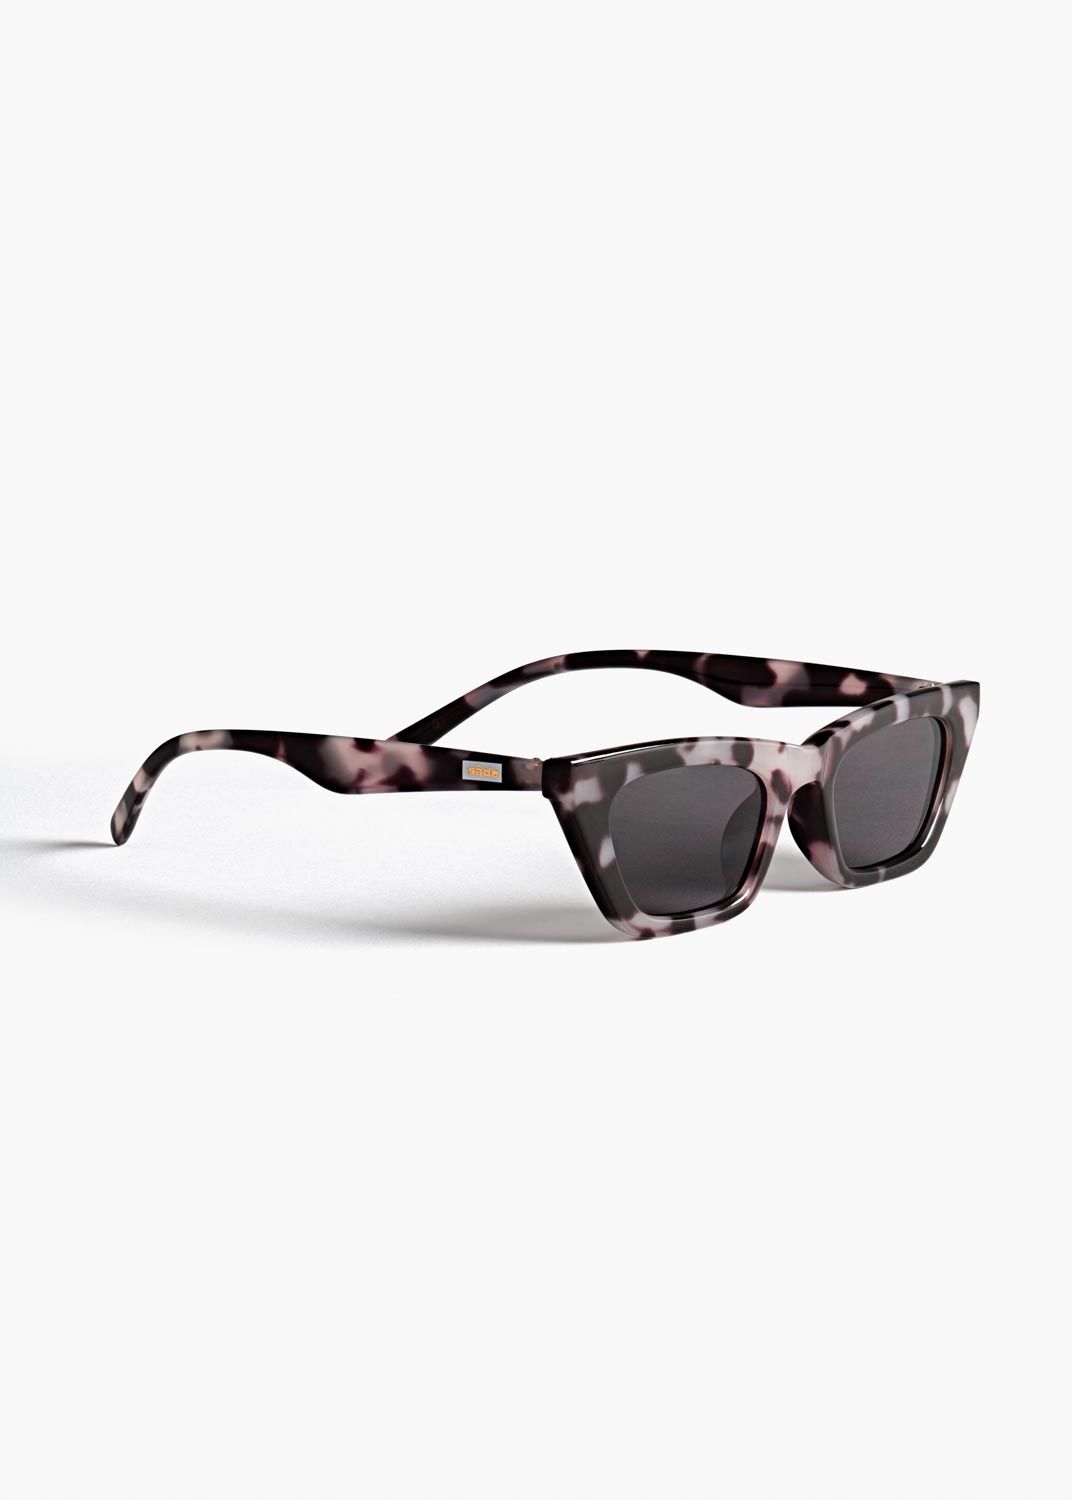 Szade Recycled, Arena (Stormy Tortoise) RRP $79.99 (1)